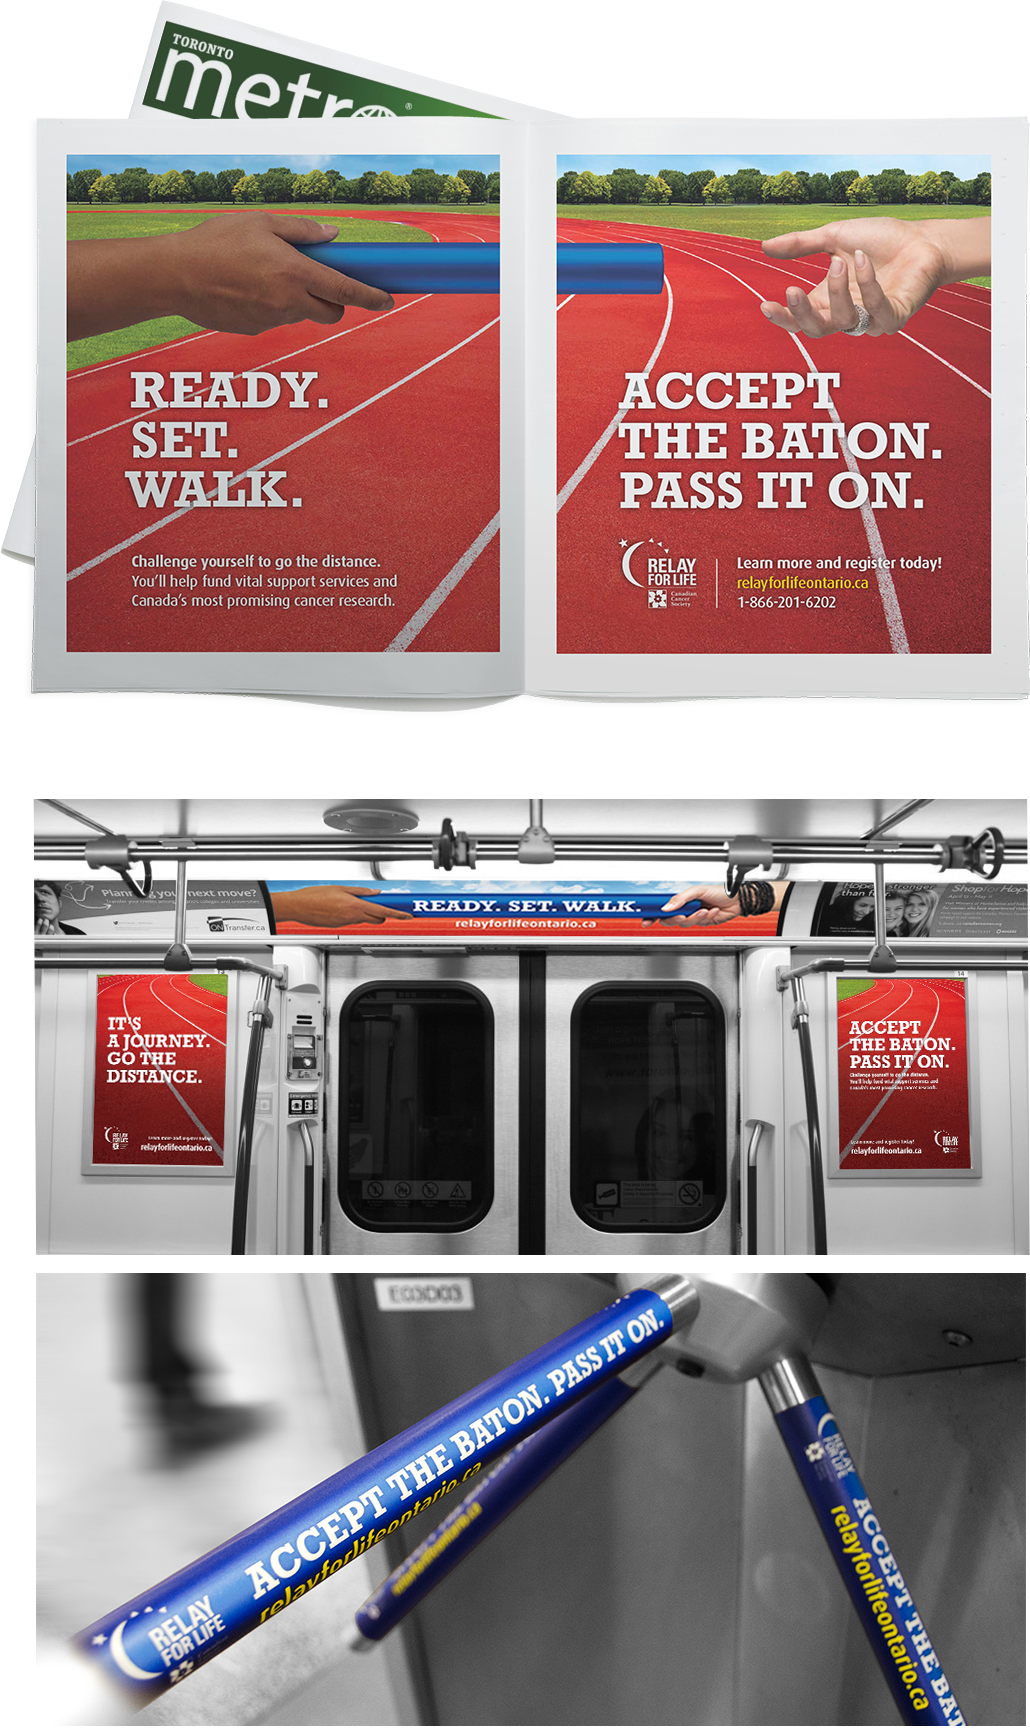 Canadian Cancer Society - Metro newspaper print, subway banners